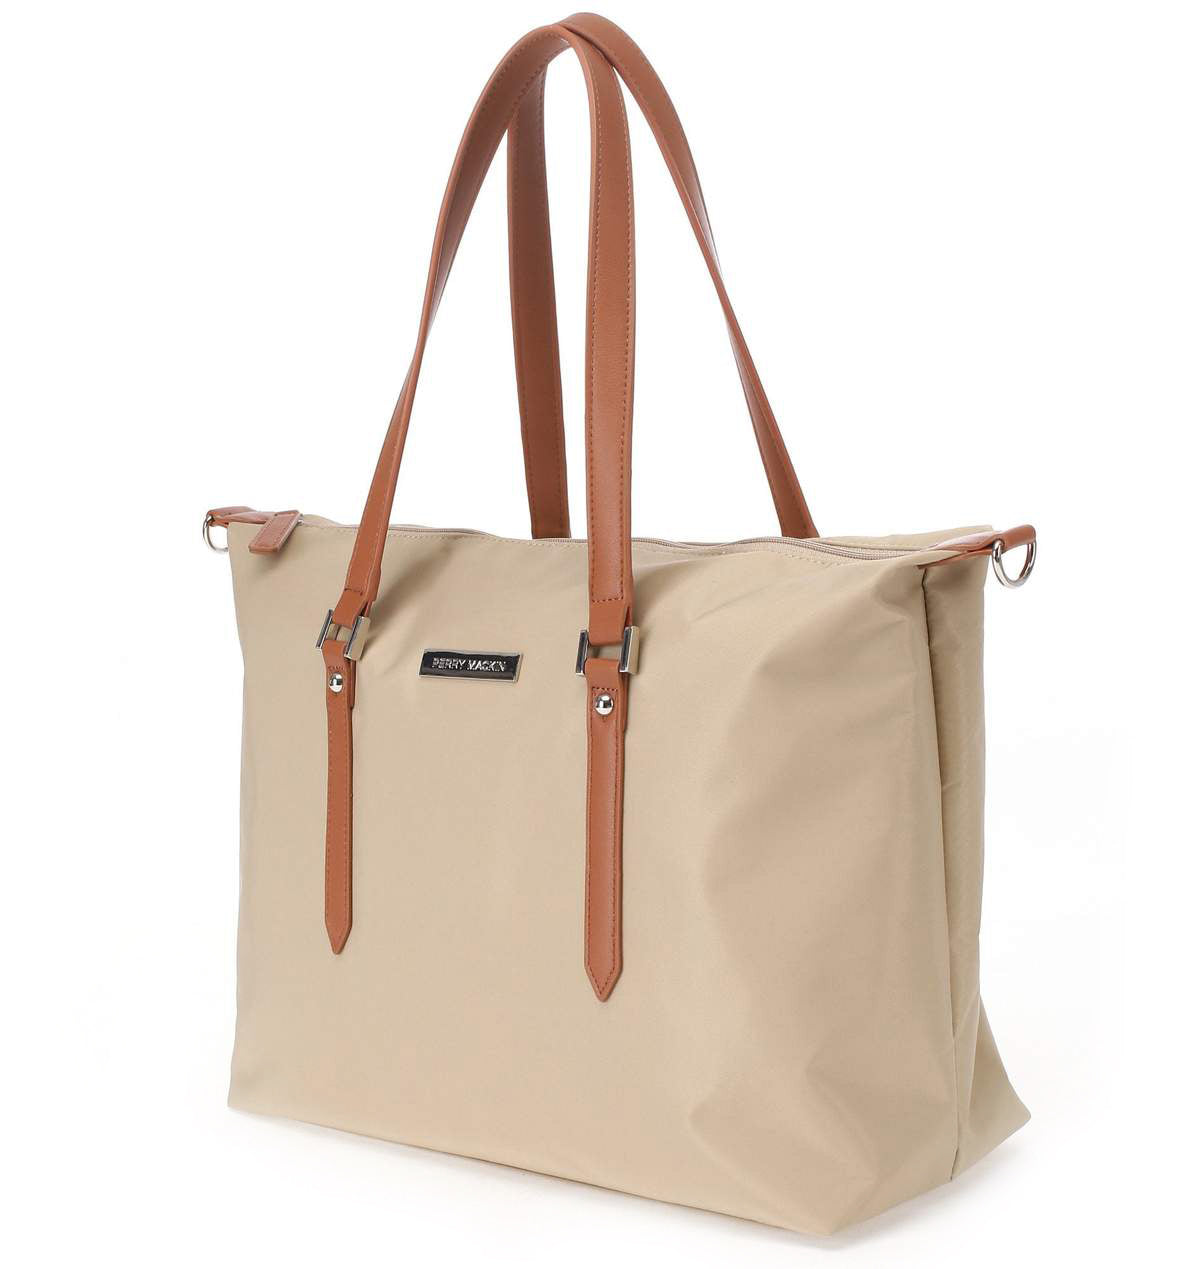 Ashley Tote Water Resistant Diaper Bag